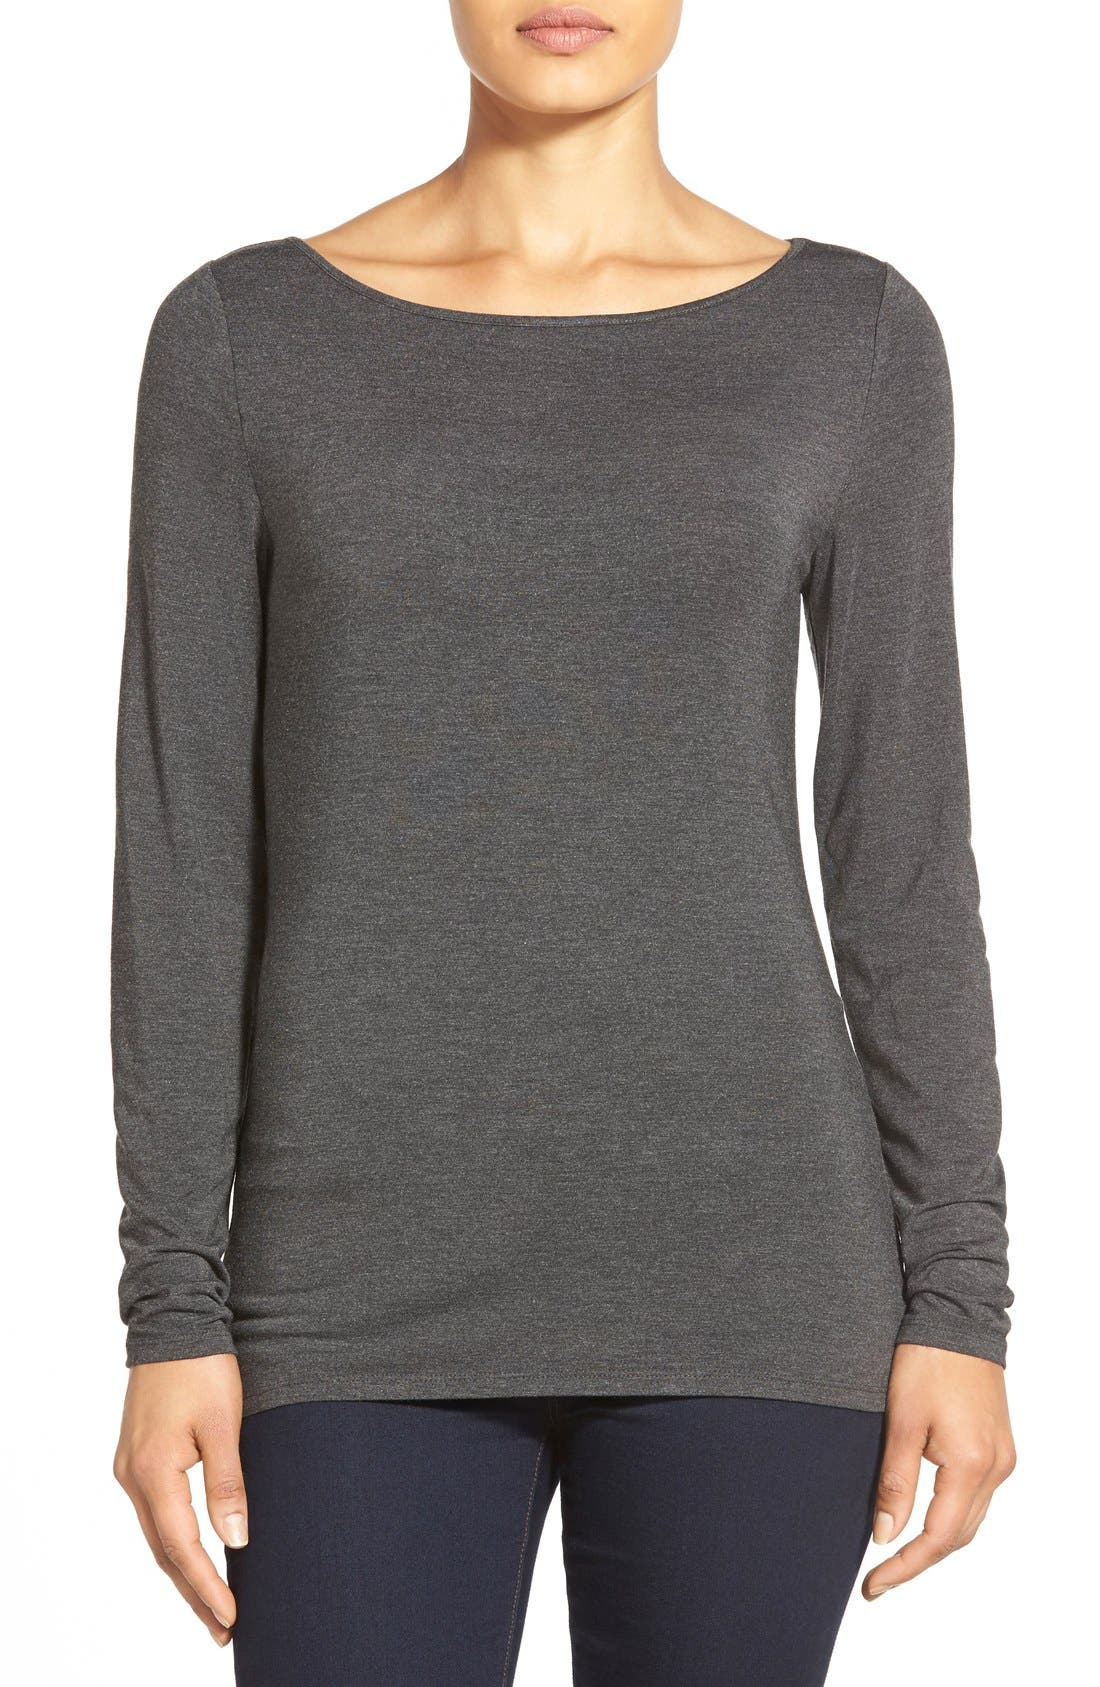 Alternate Image 1 Selected - Nordstrom Collection Modal Blend Jersey Top